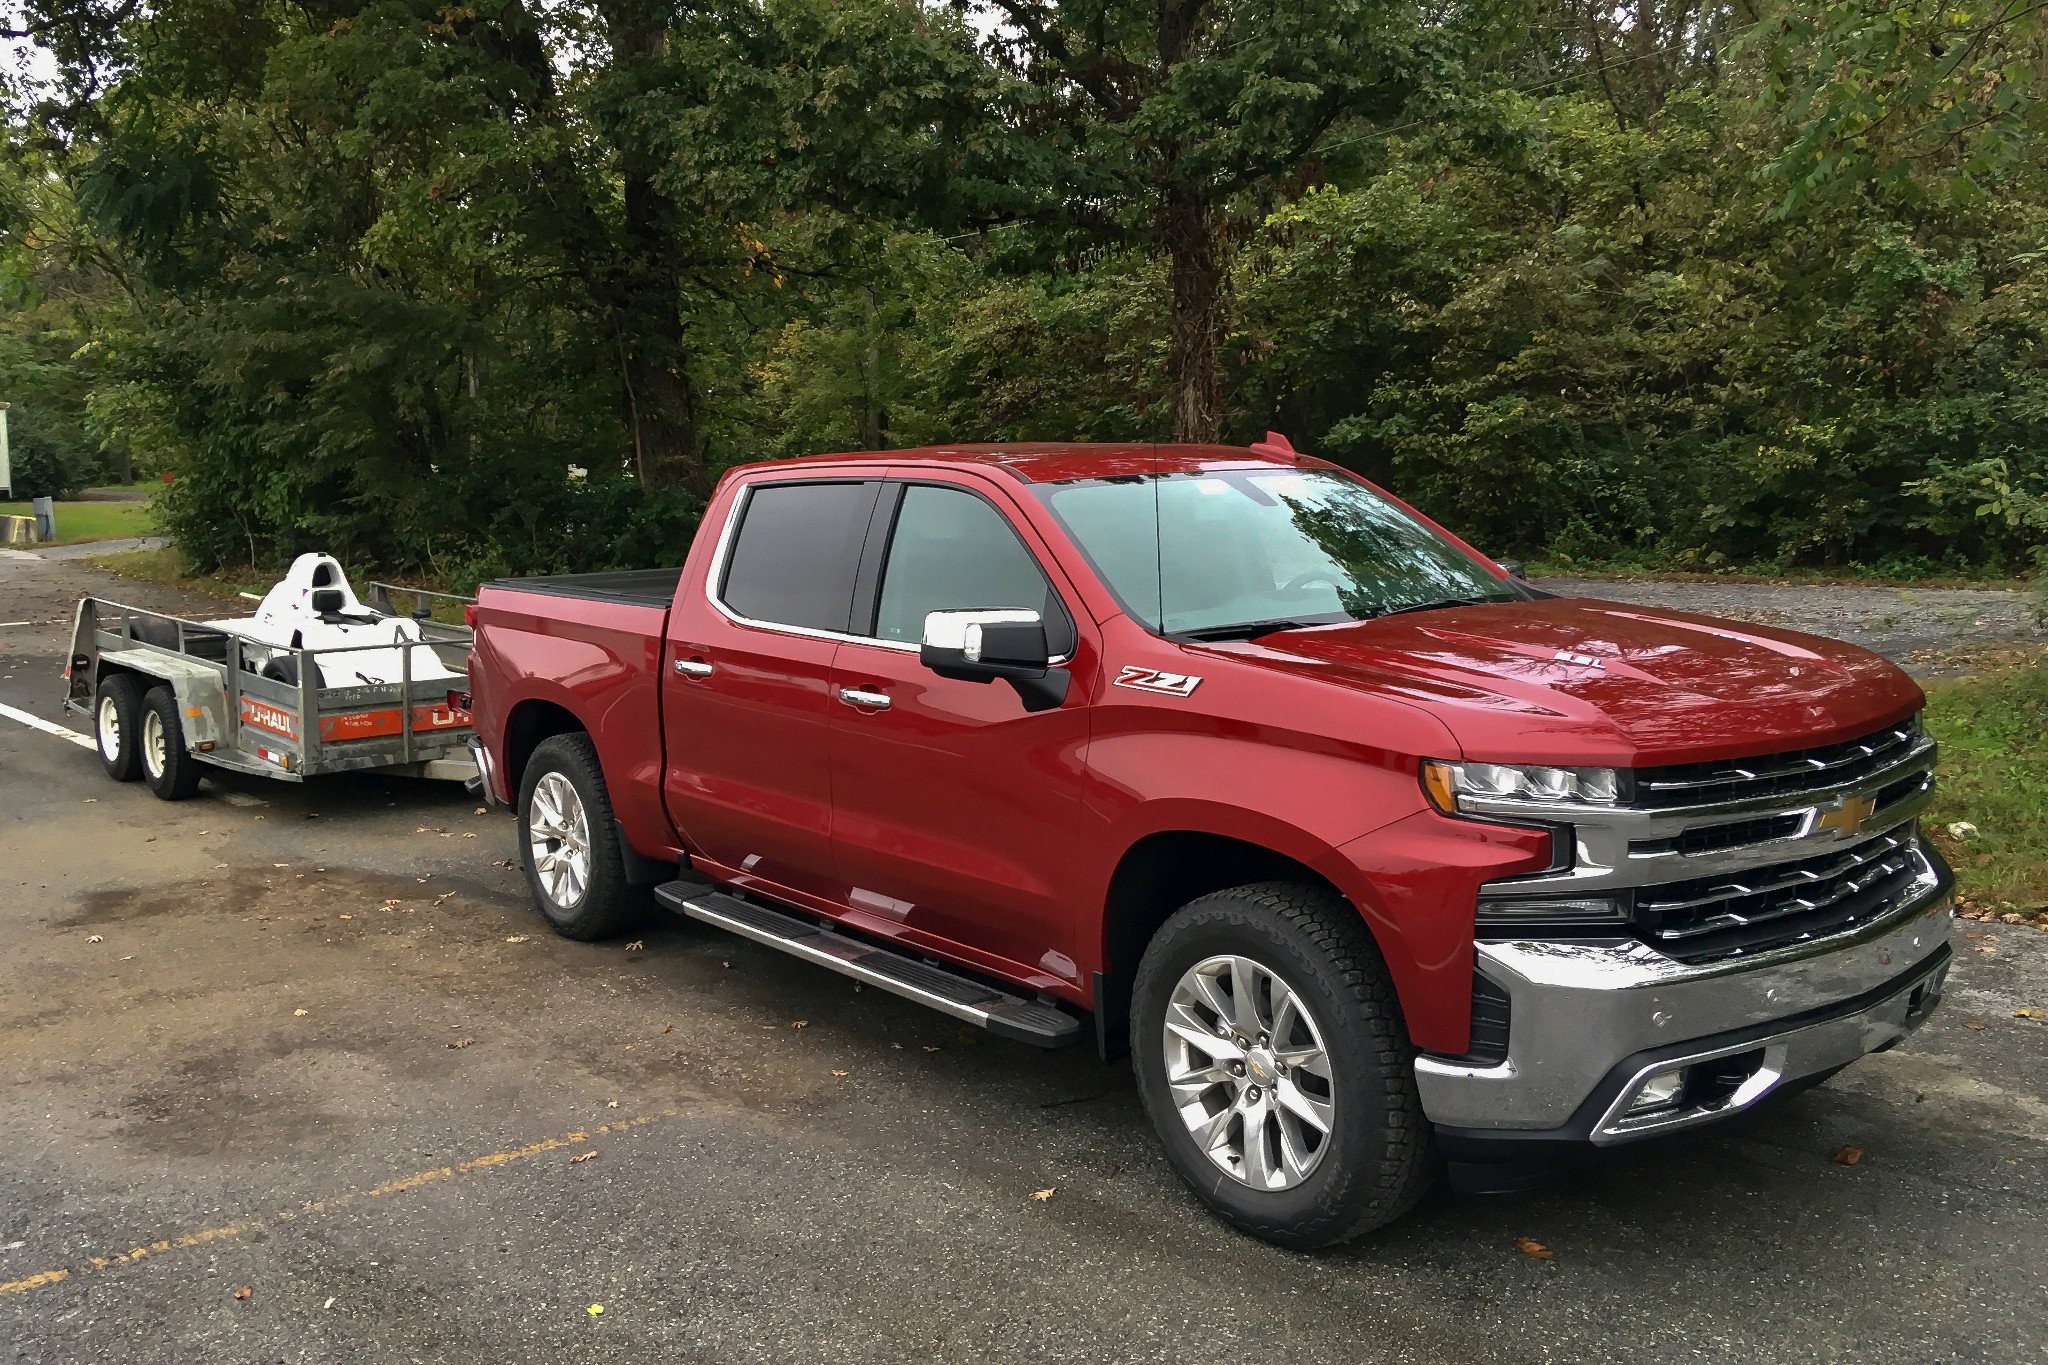 03-chevrolet-silverado-1500-2019-angle--exterior--front--red--towing.jpg